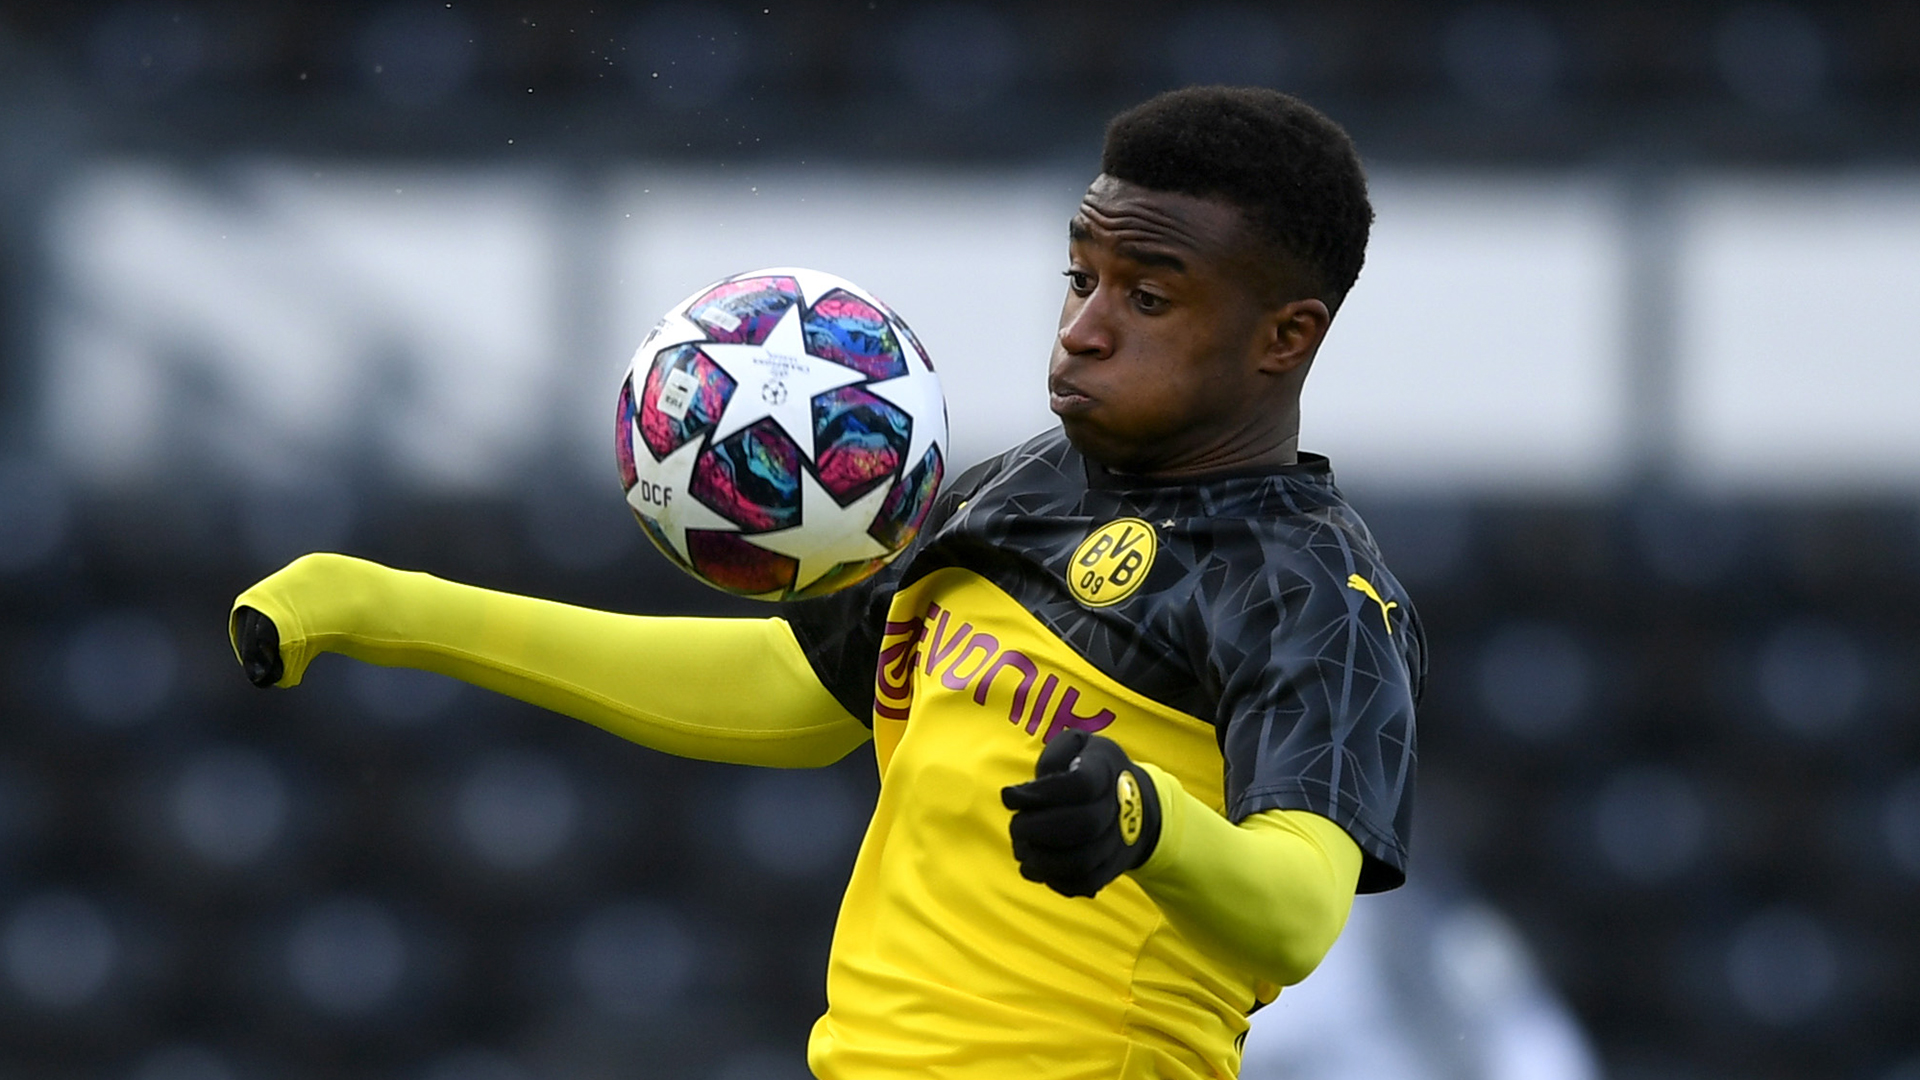 Moukoko reveals Borussia Dortmund first team players support